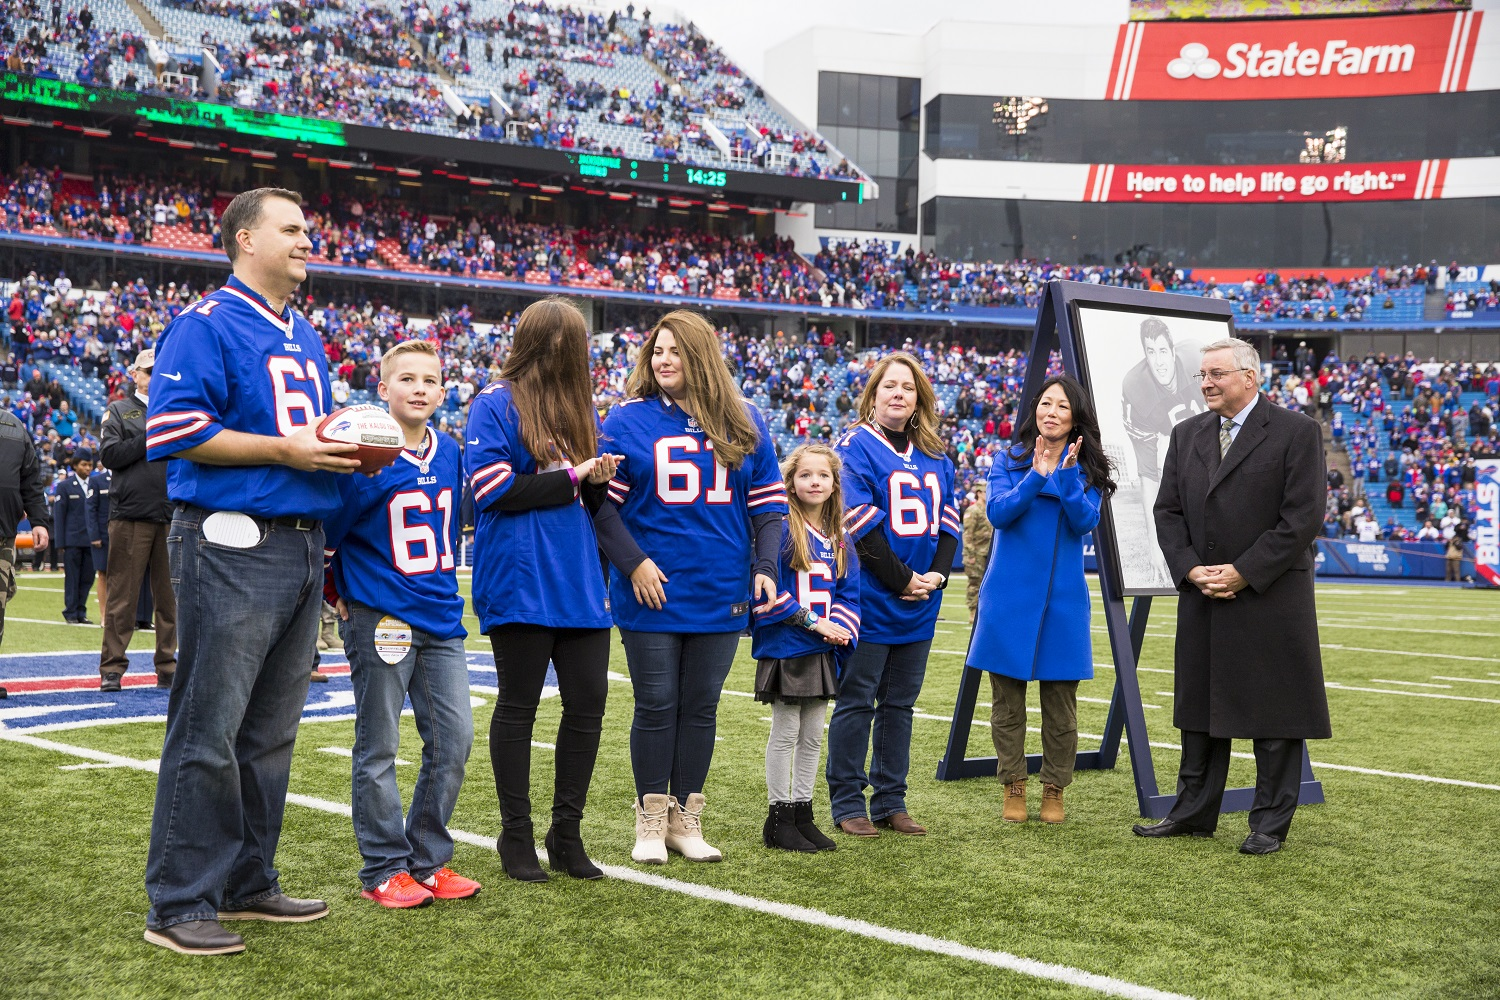 Buffalo Bills owners Kim and Terry Pegula, right, honor the family of Bob Kalsu during a ceremony at New Era Field on Nov. 27, 2016. | Brett Carlsen/Getty Images